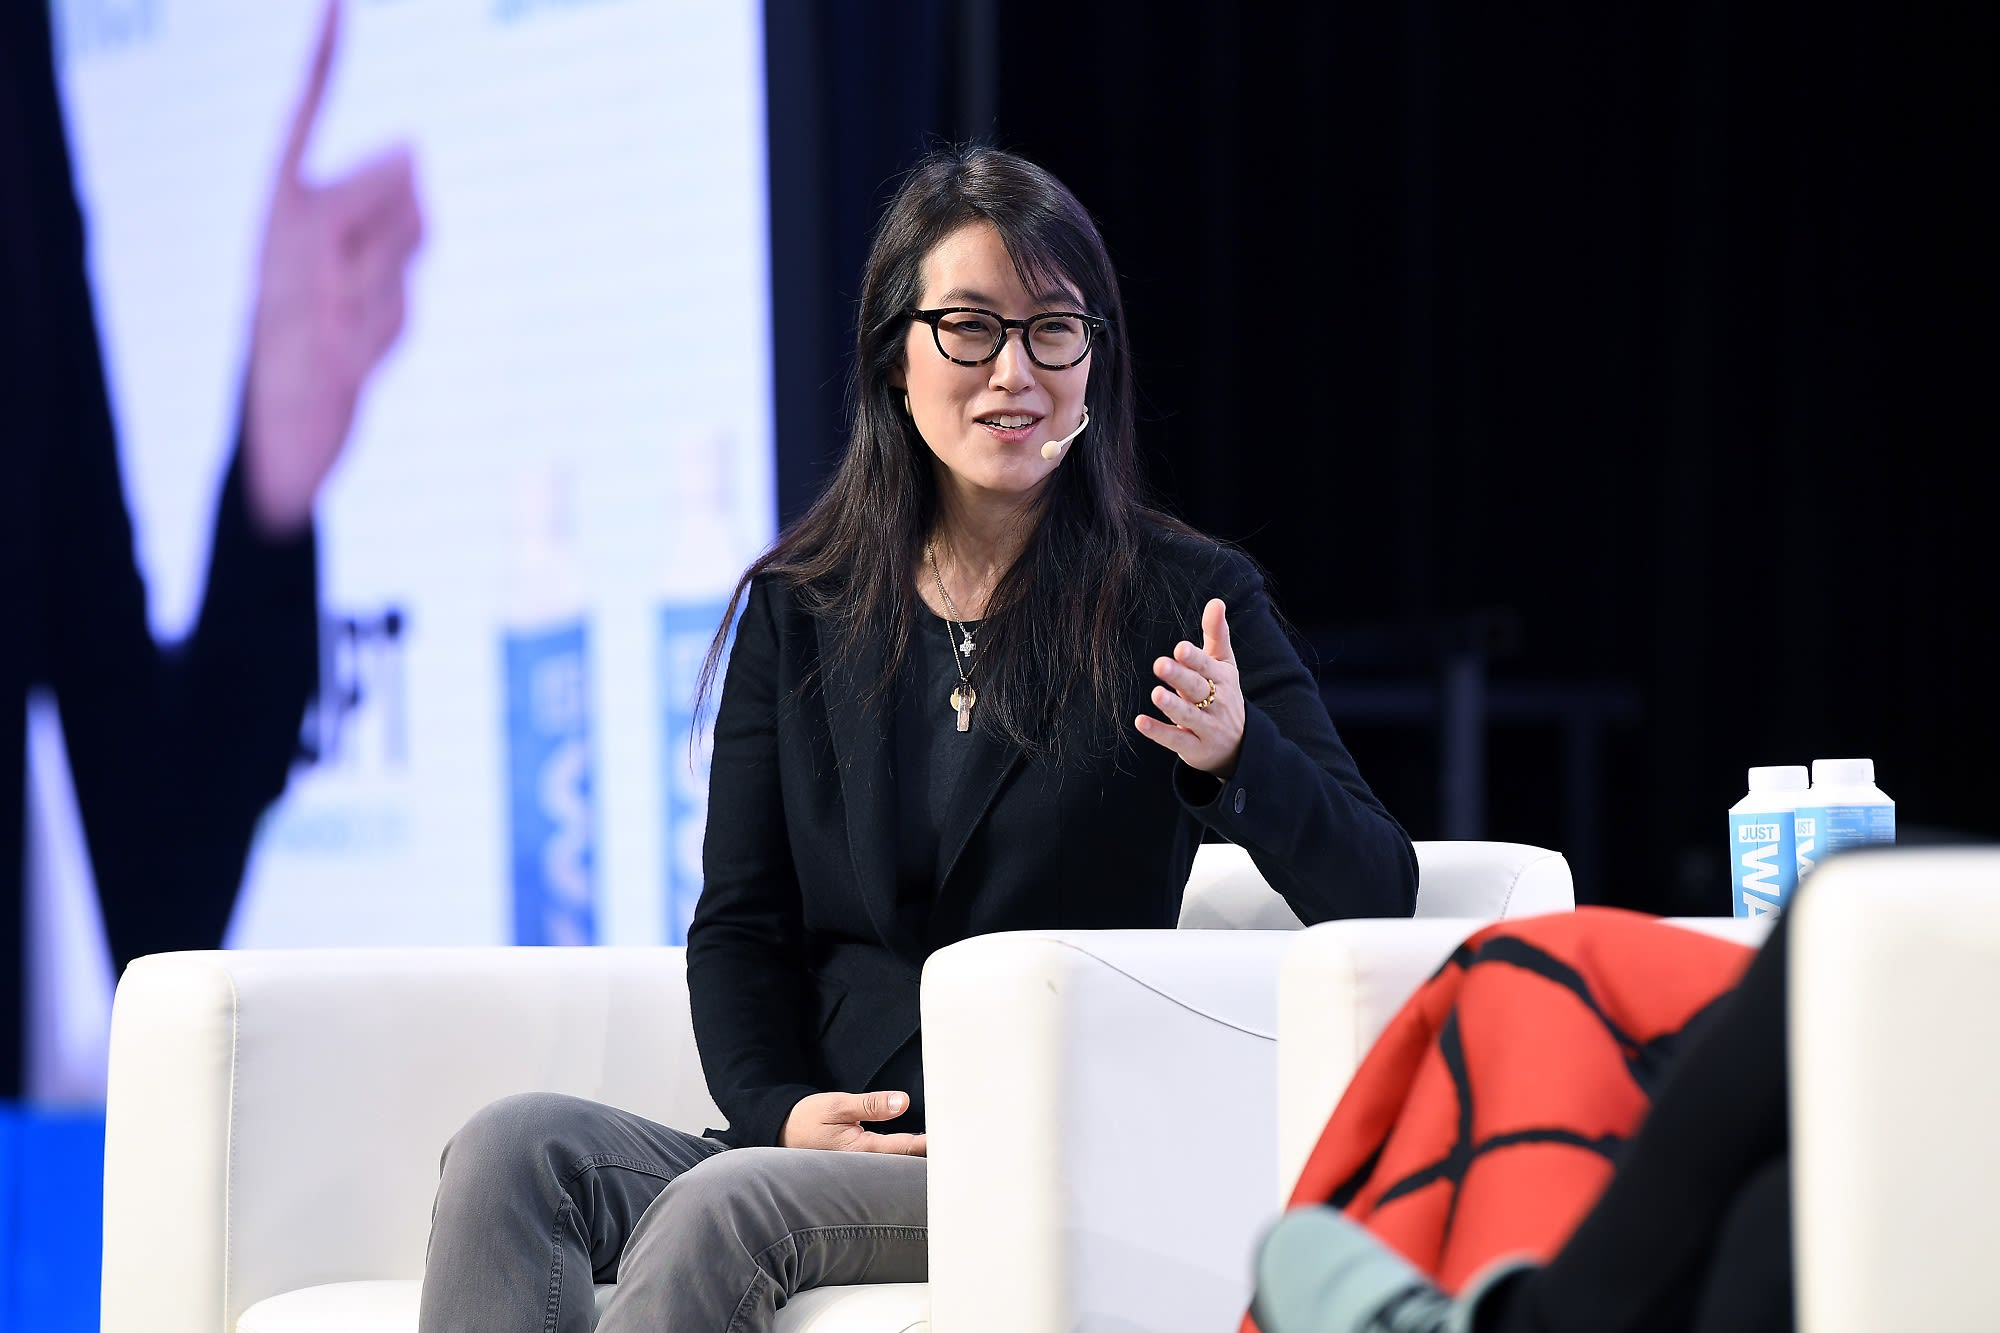 www.cnbc.com: Ellen Pao explains why she never felt imposter syndrome as Reddit CEO: 'I've seen so many horrible male CEOs'